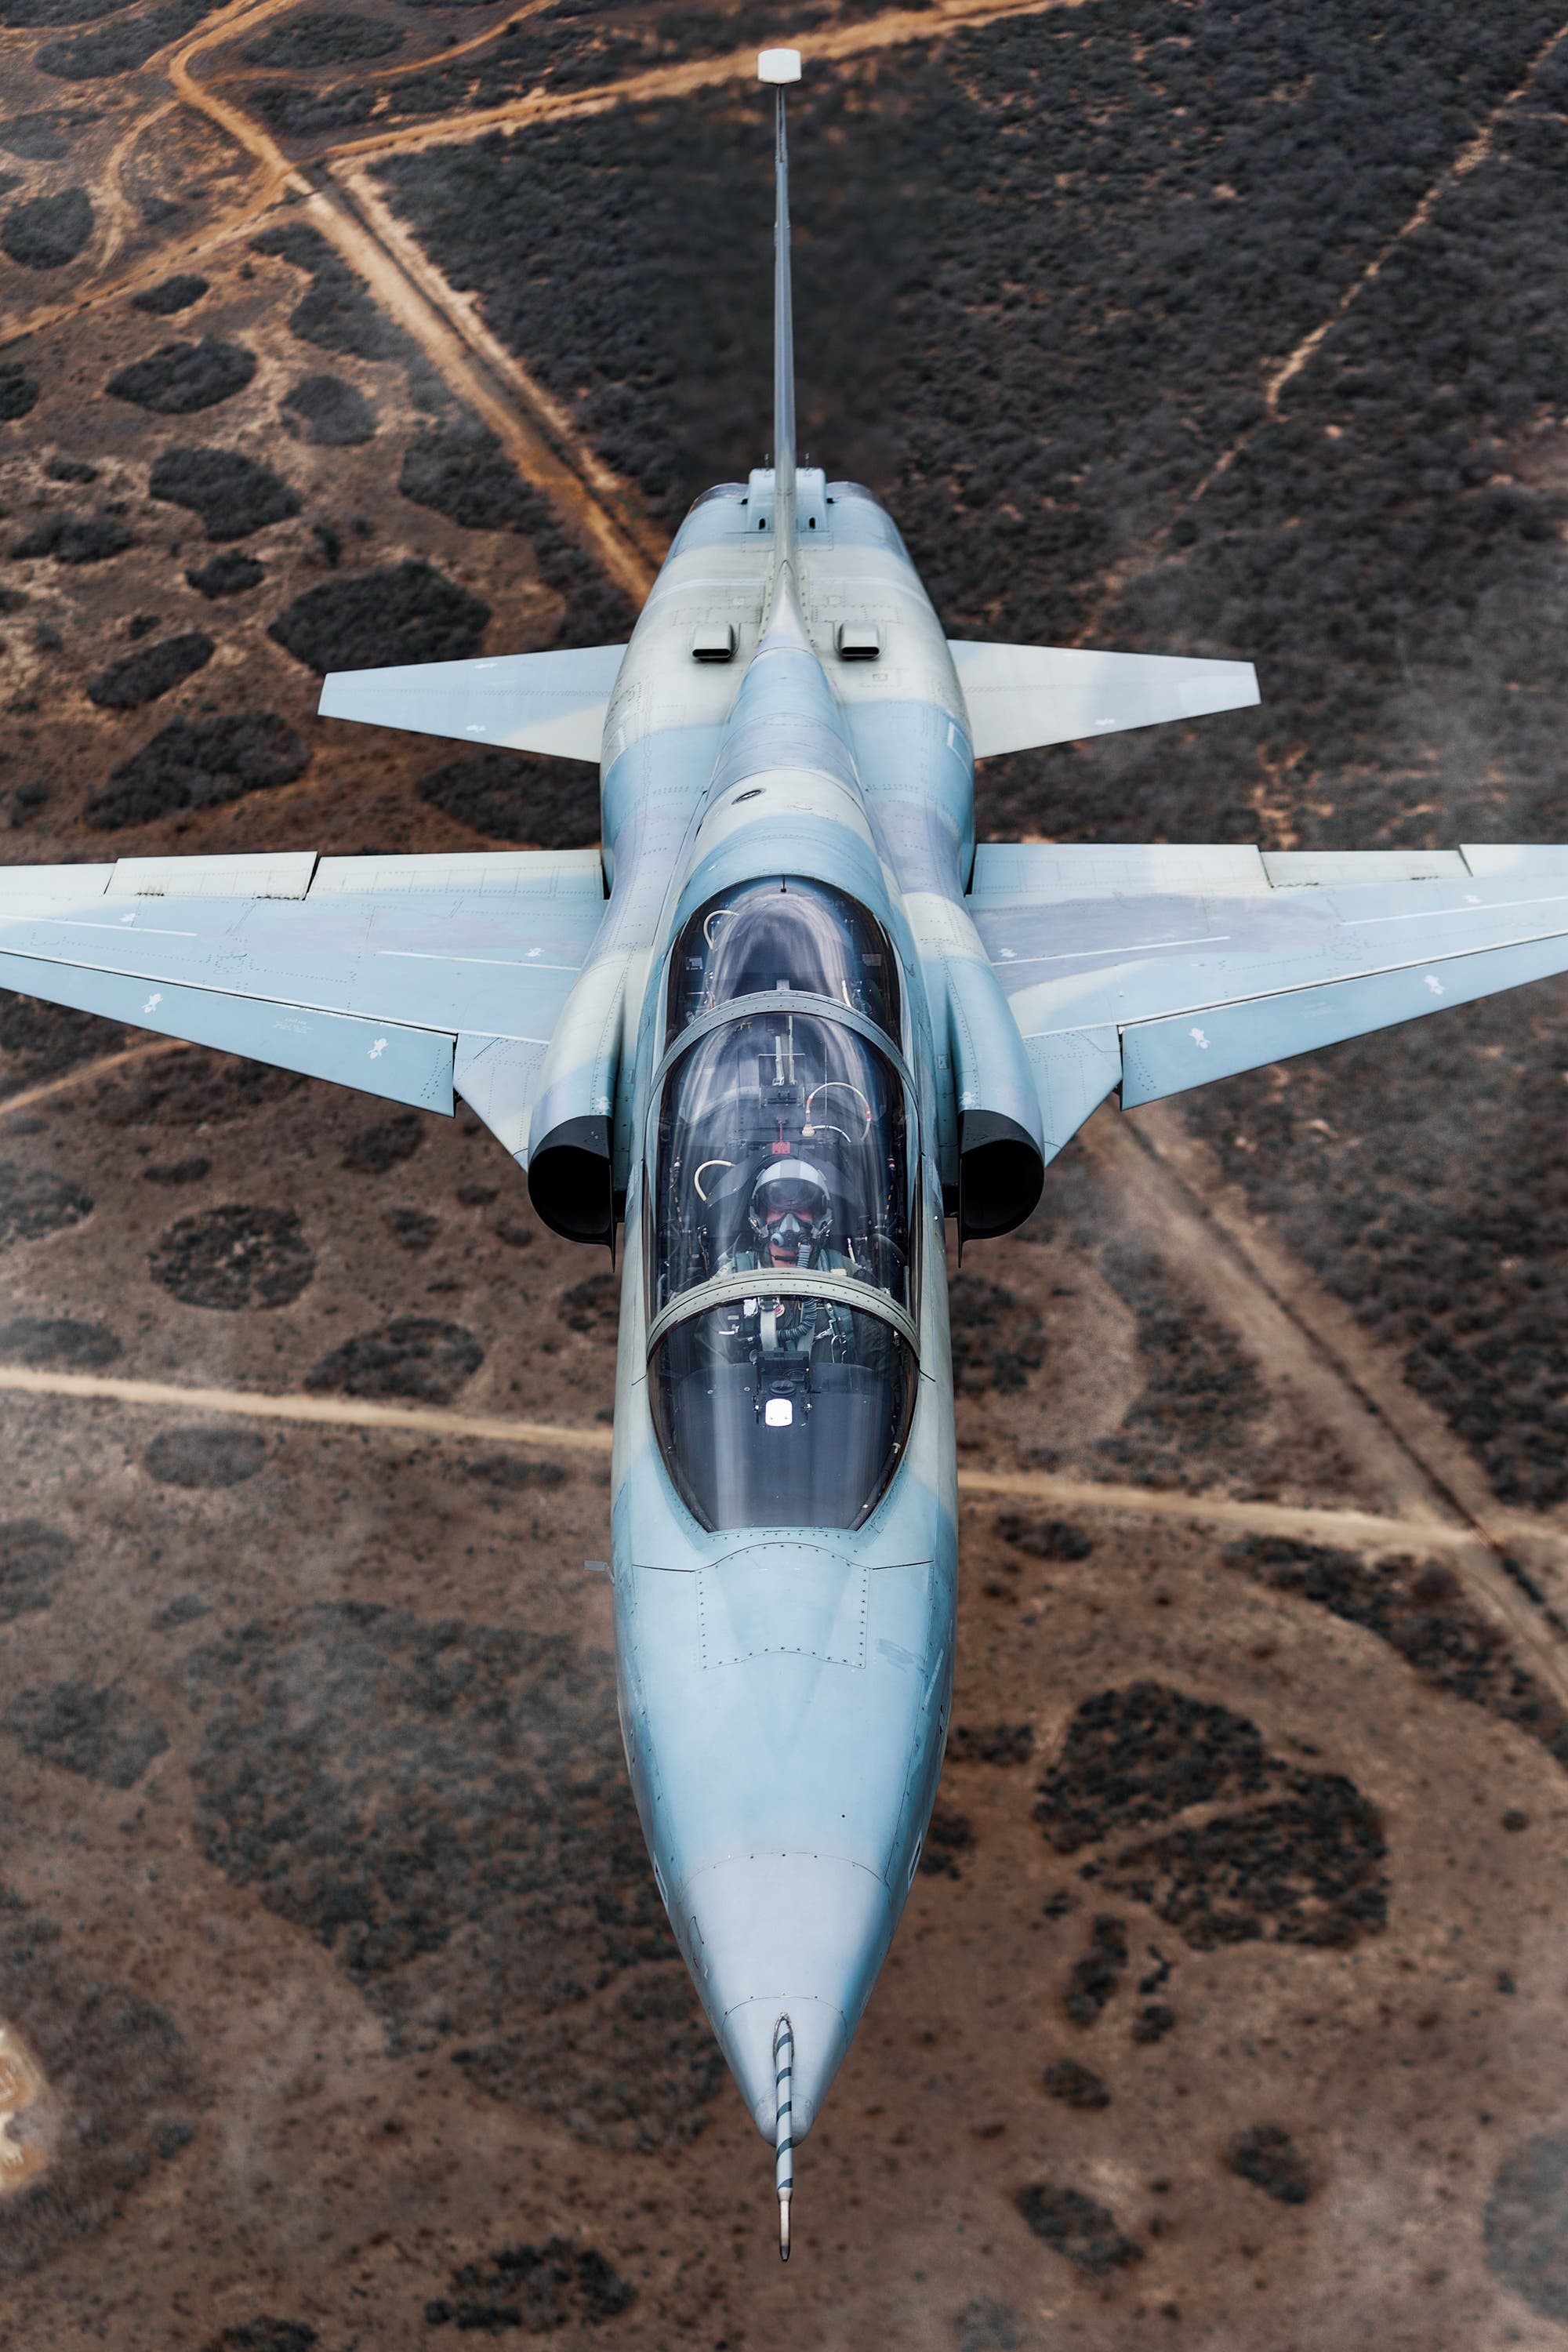 While in Mid Air, Bradley Wentzel Photographs Planes Like No Other